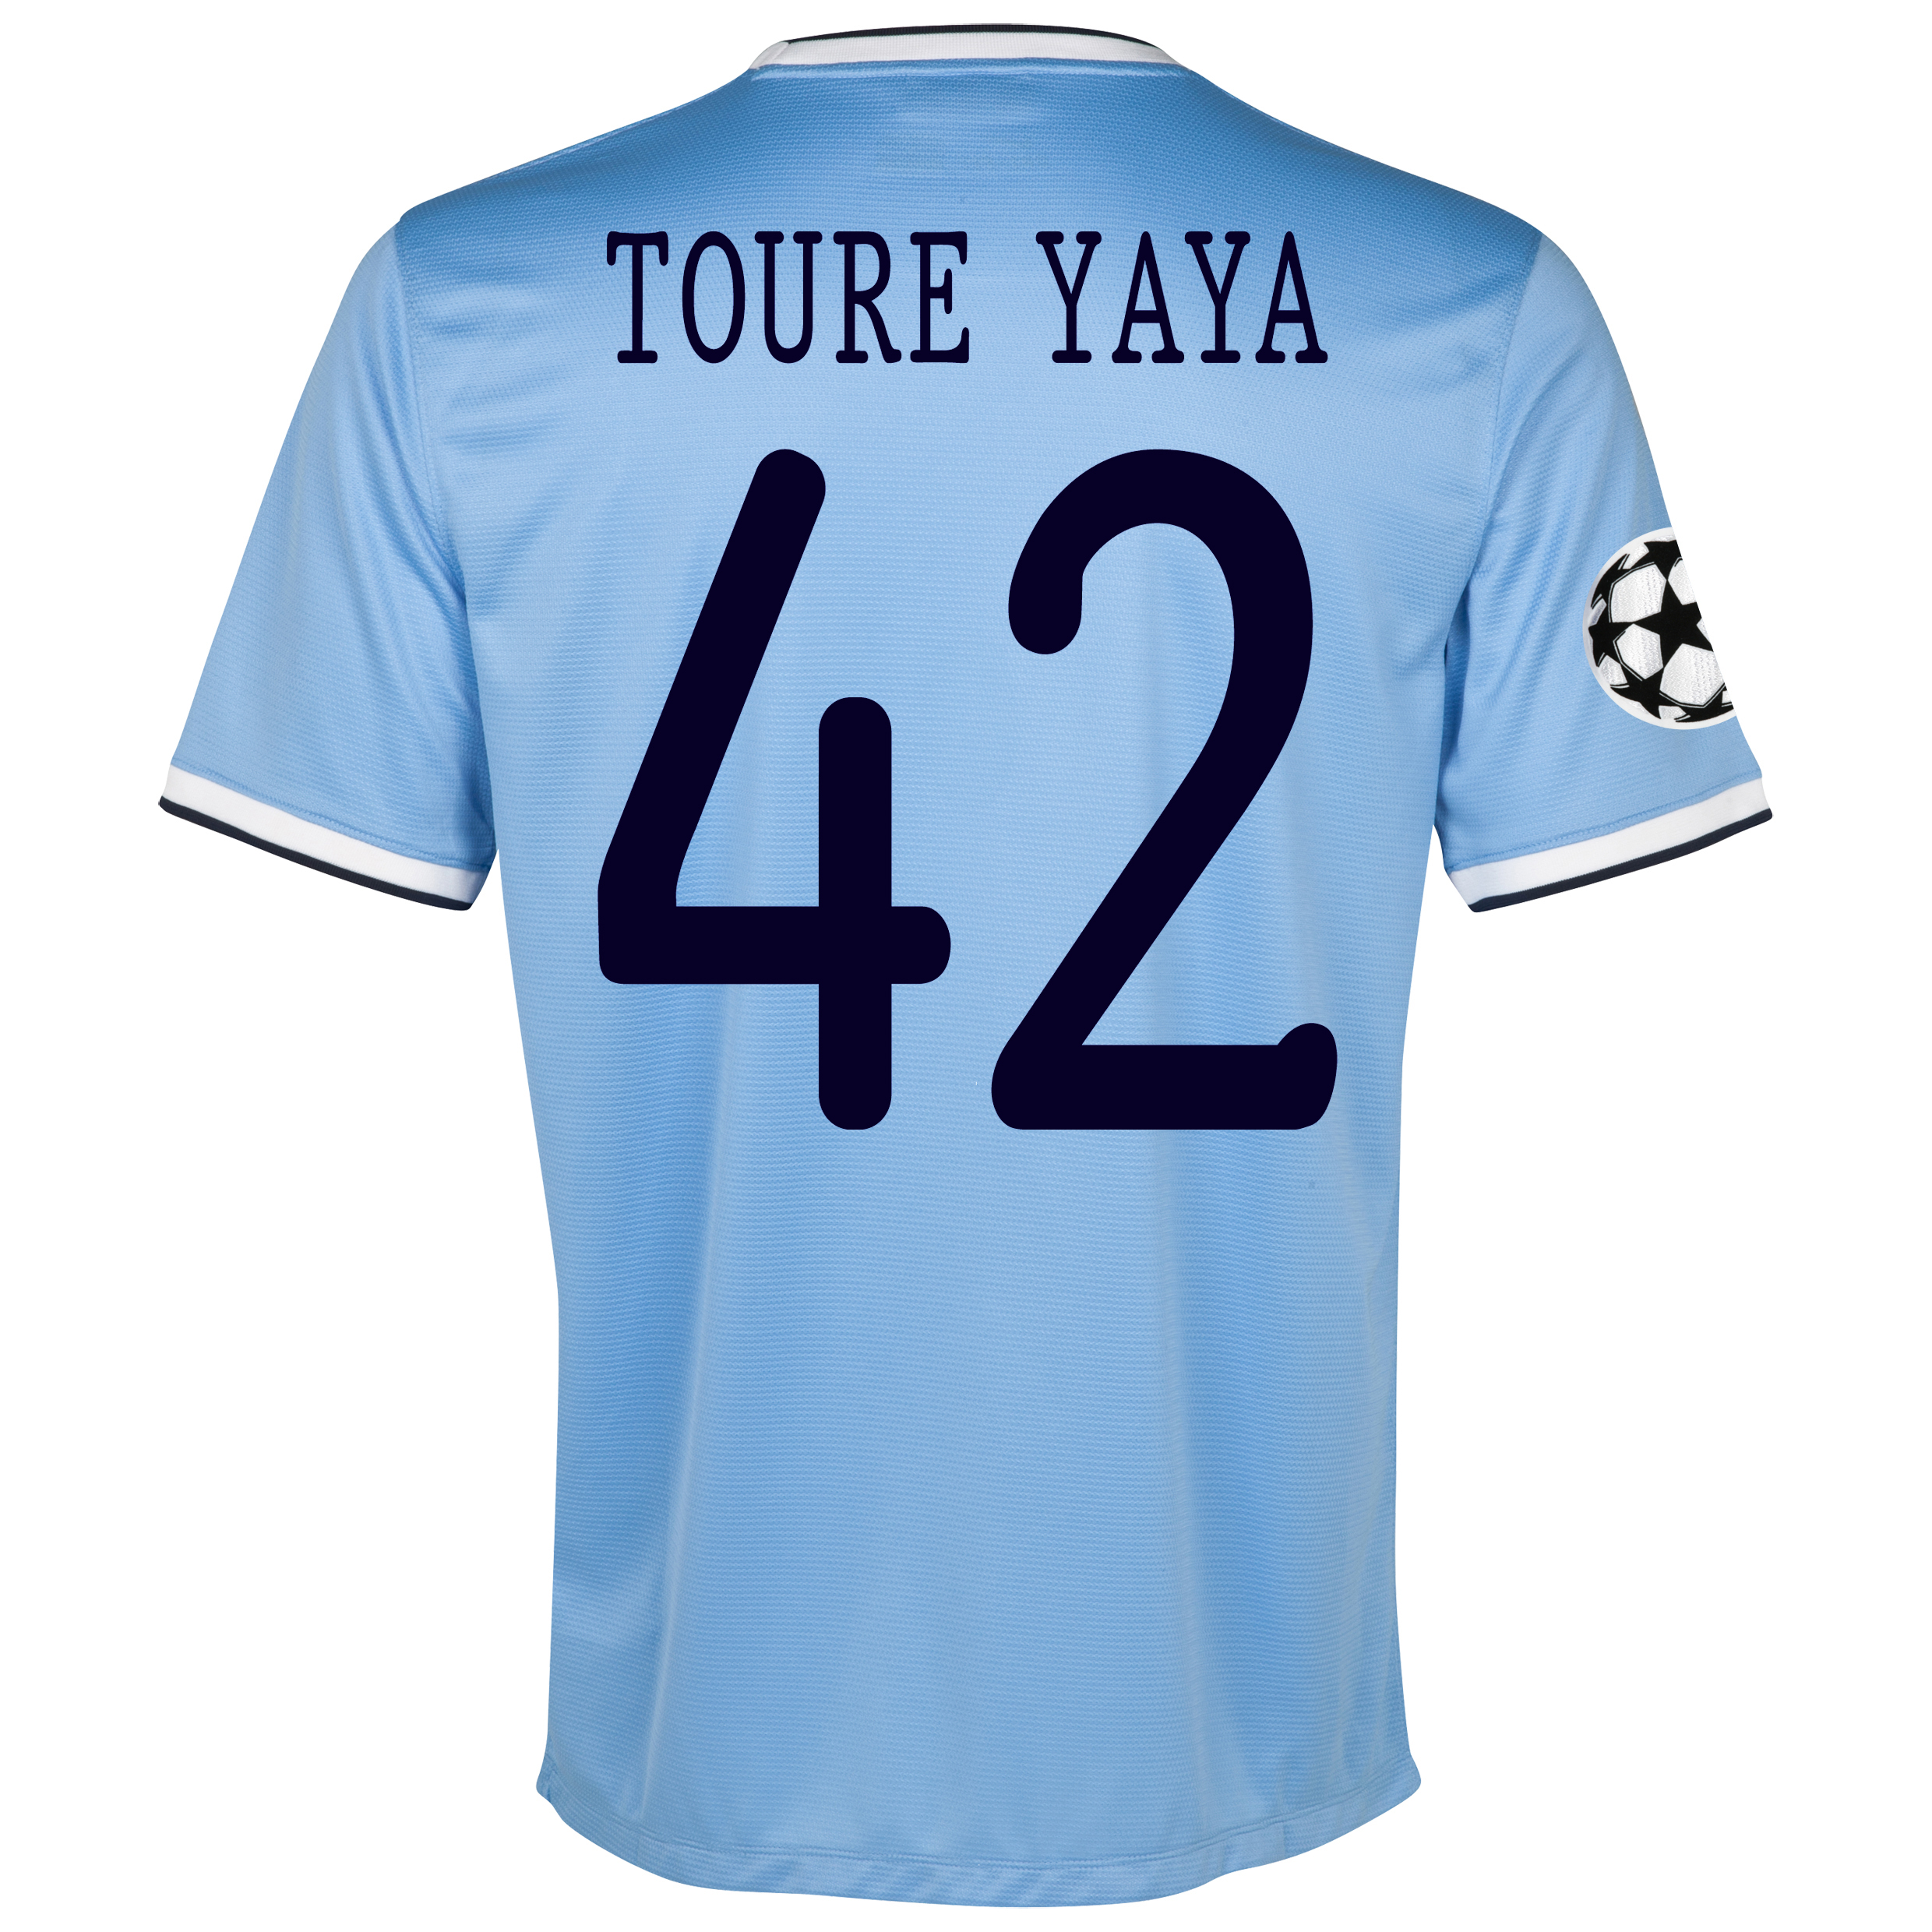 Manchester City UEFA Champions League Home Shirt 2013/14 with Toure Yaya 42 printing